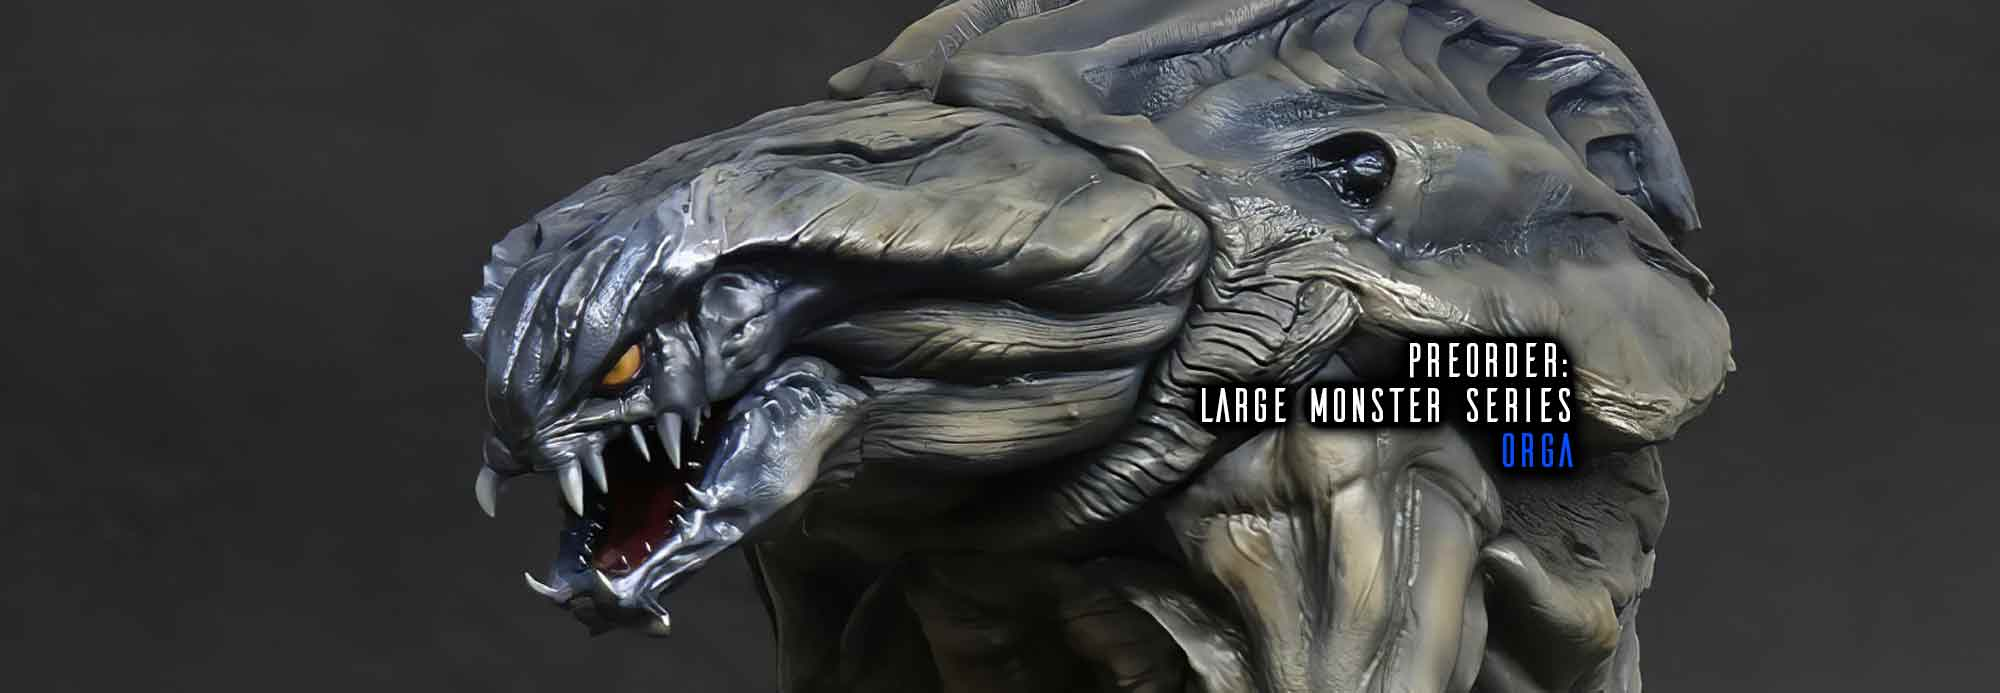 Up for Preorder: X-Plus Orga.